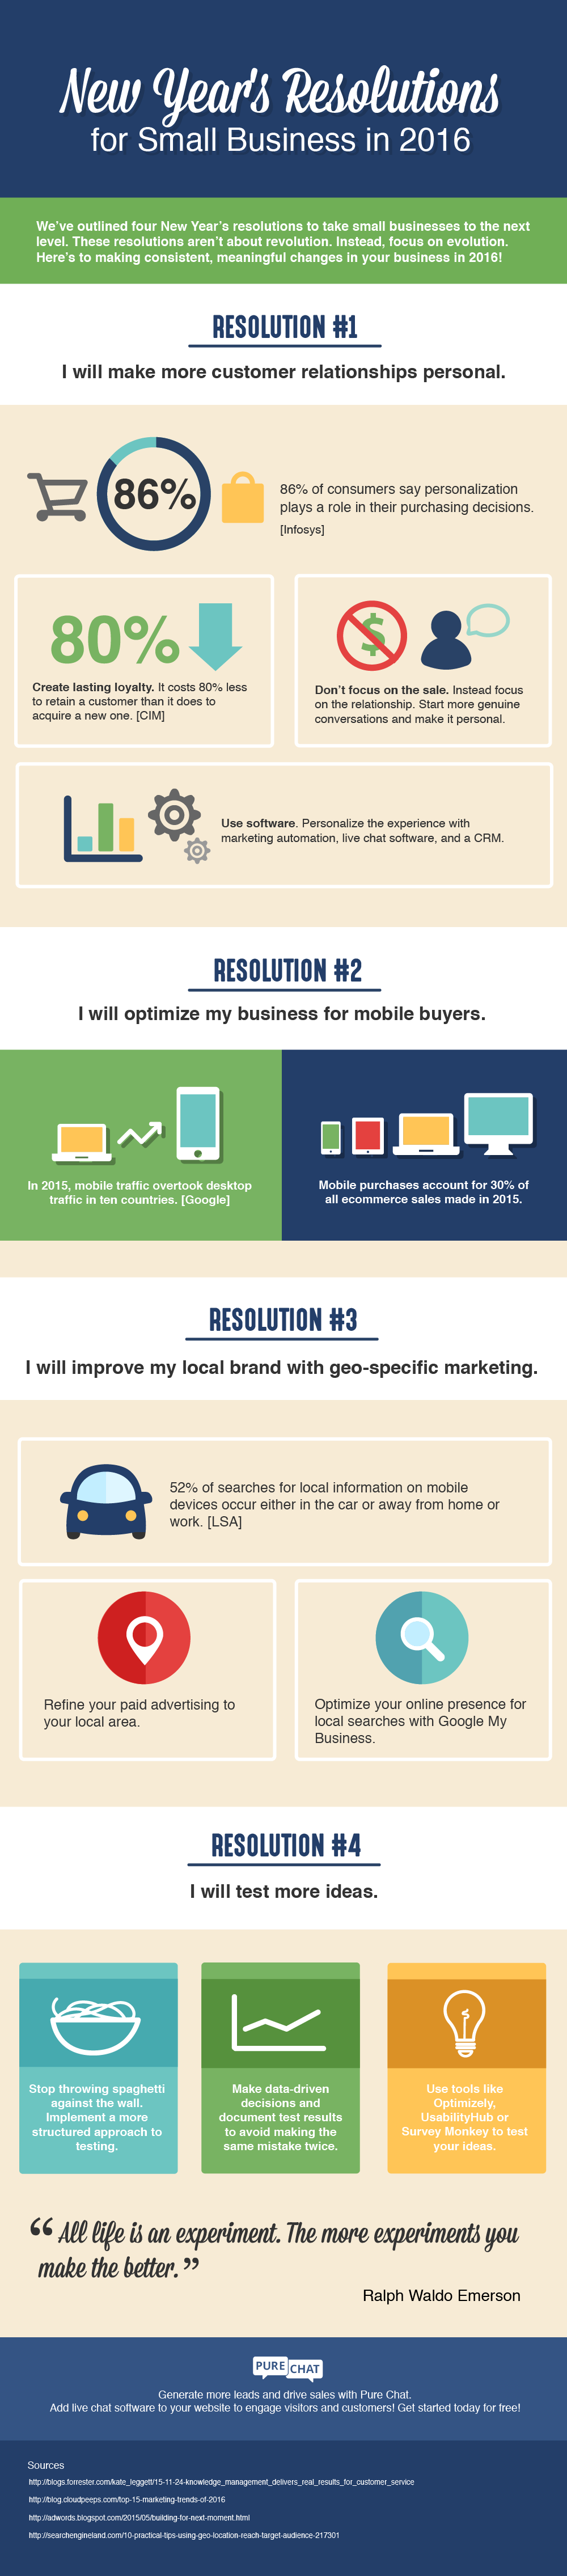 New Year's Resolutions for Small Business in 2016 Infographic